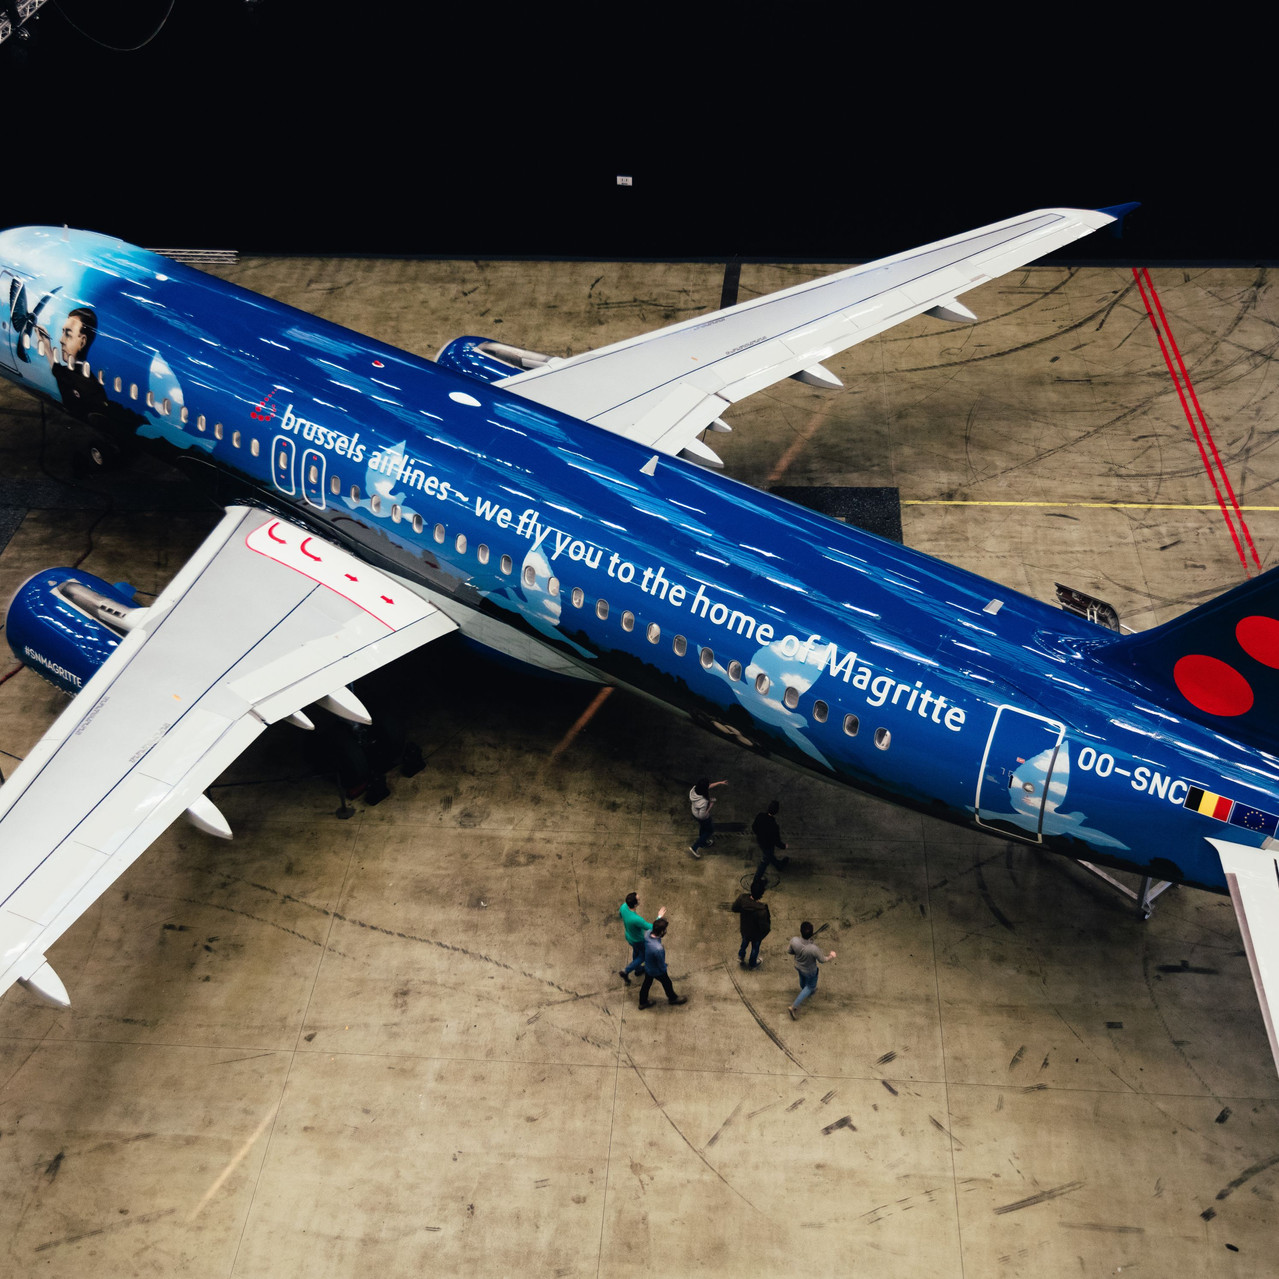 008_Brussels Airlines_maigret